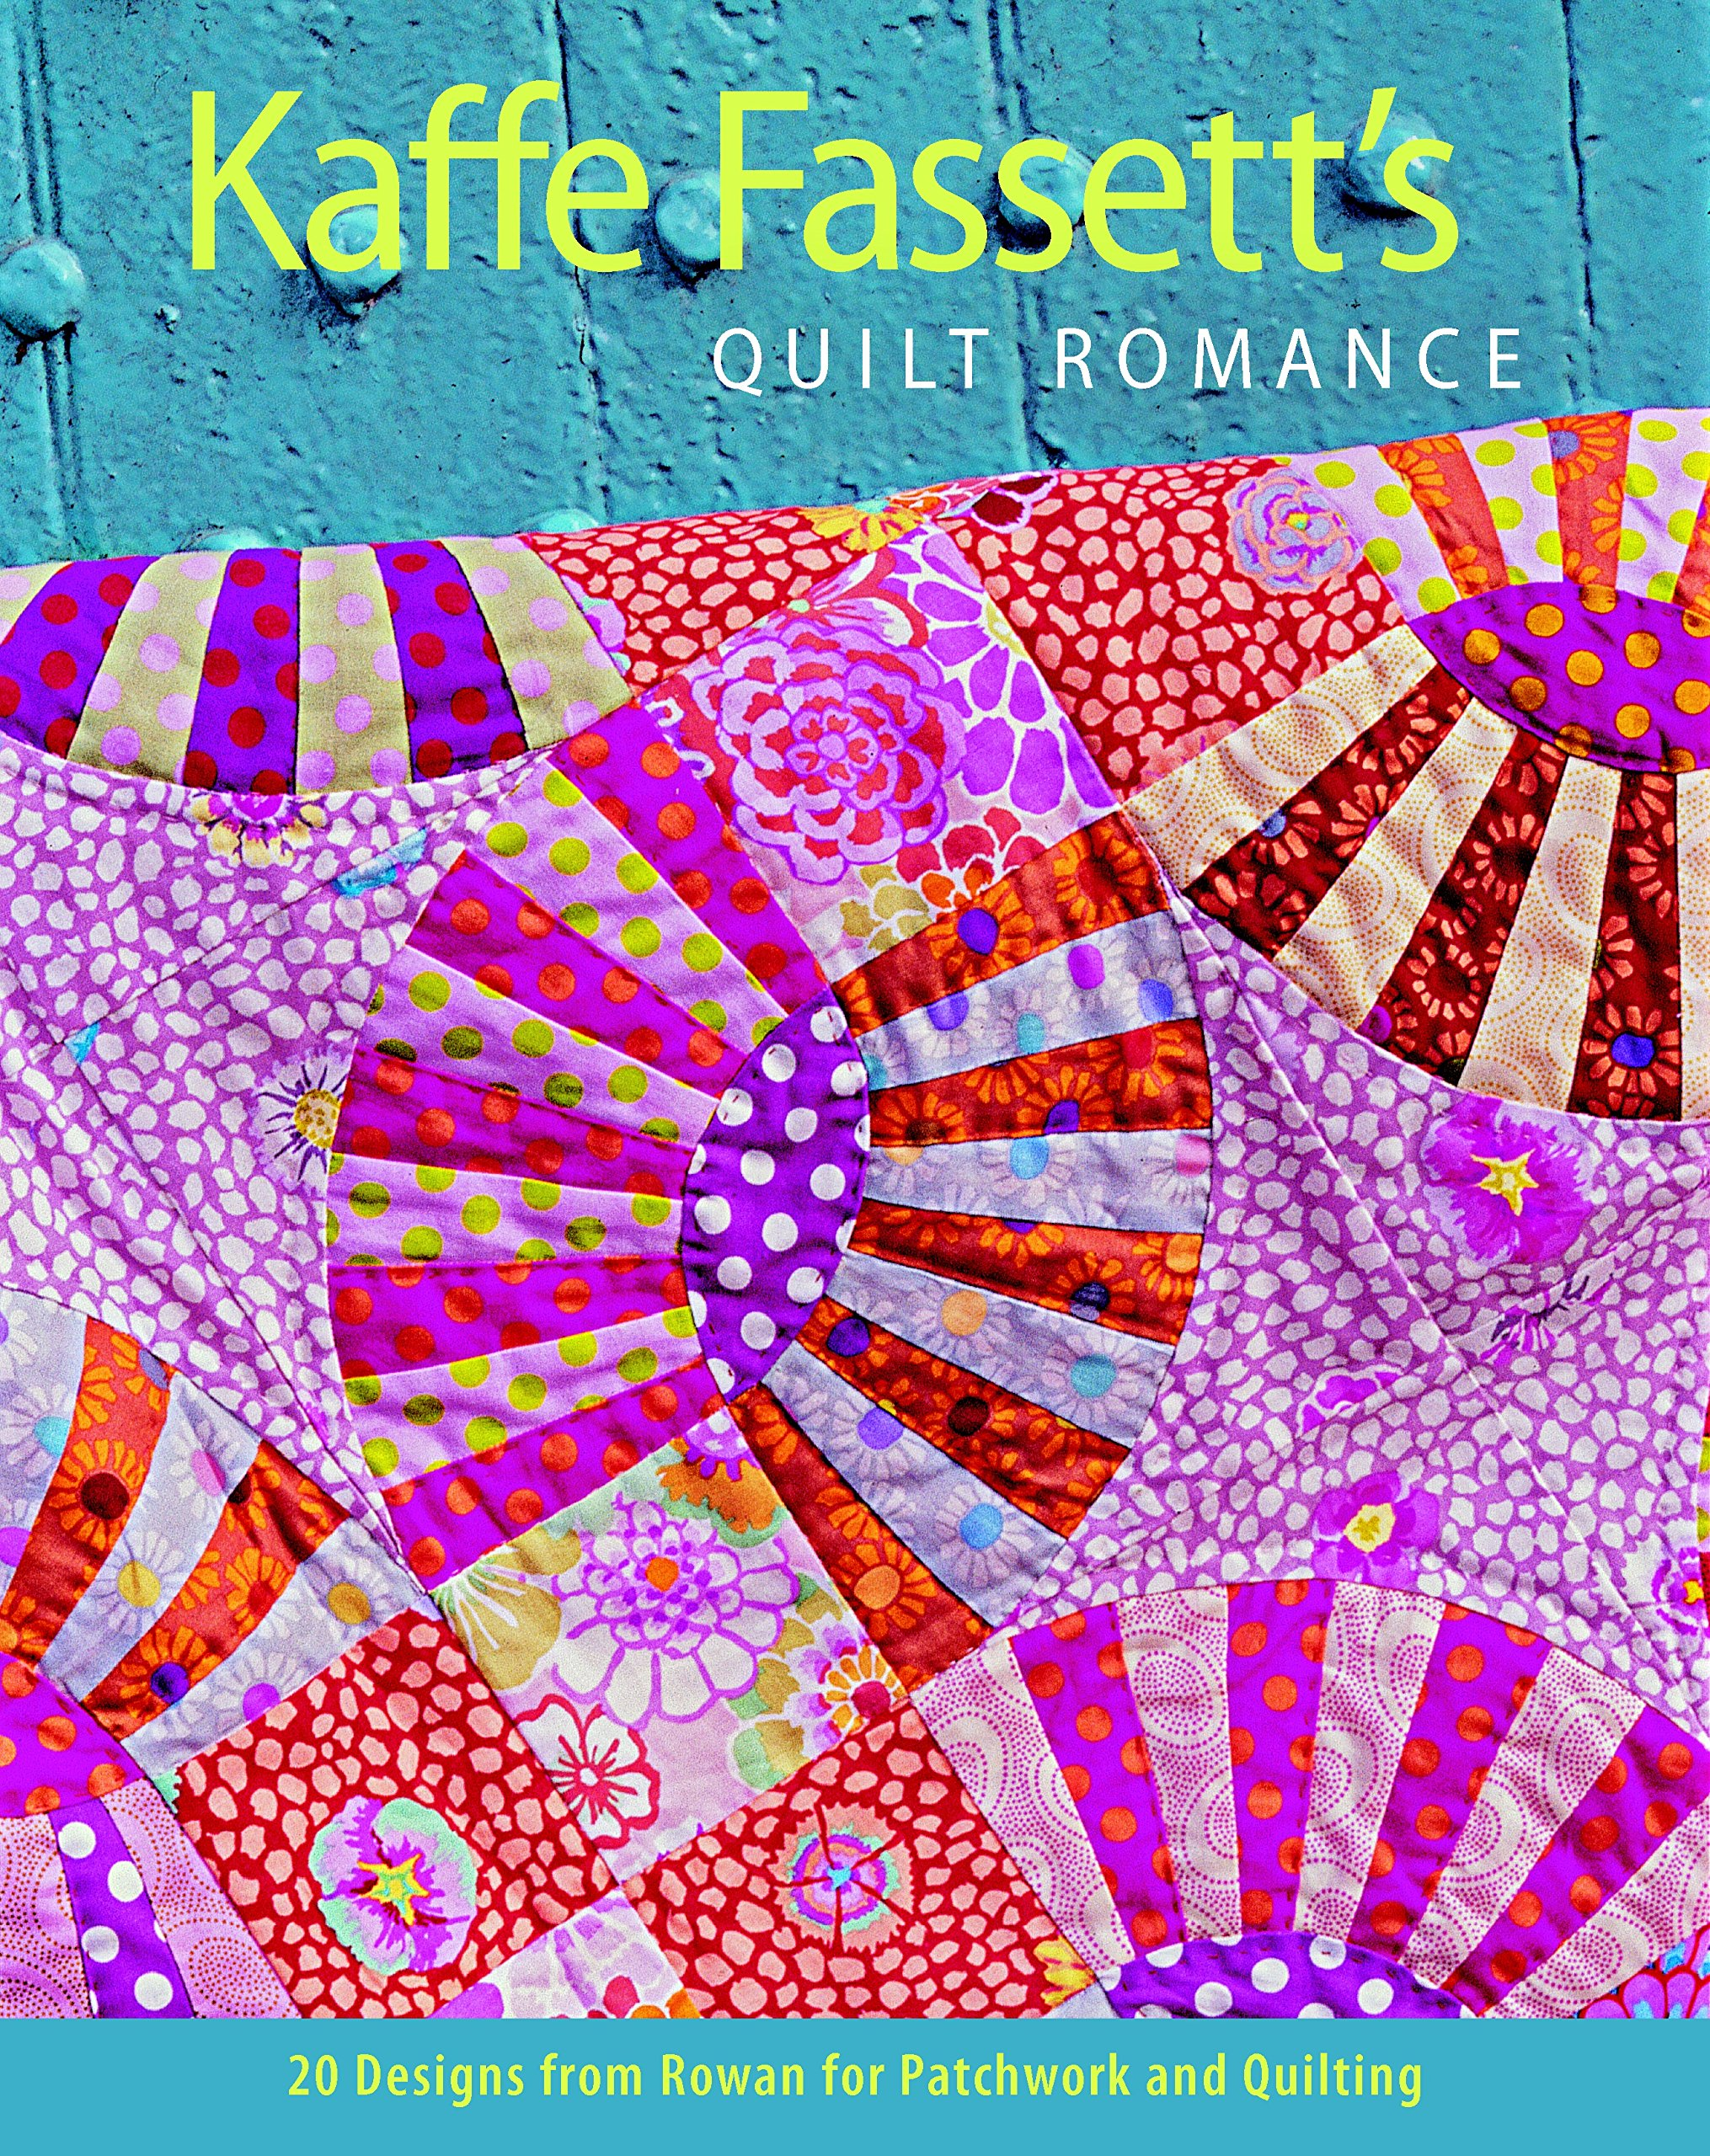 Kaffe Fassett's Quilt Romance: 20 Designs from Rowan for Patchwork and Quilting (Patchwork Adn Quitting, Band 11)